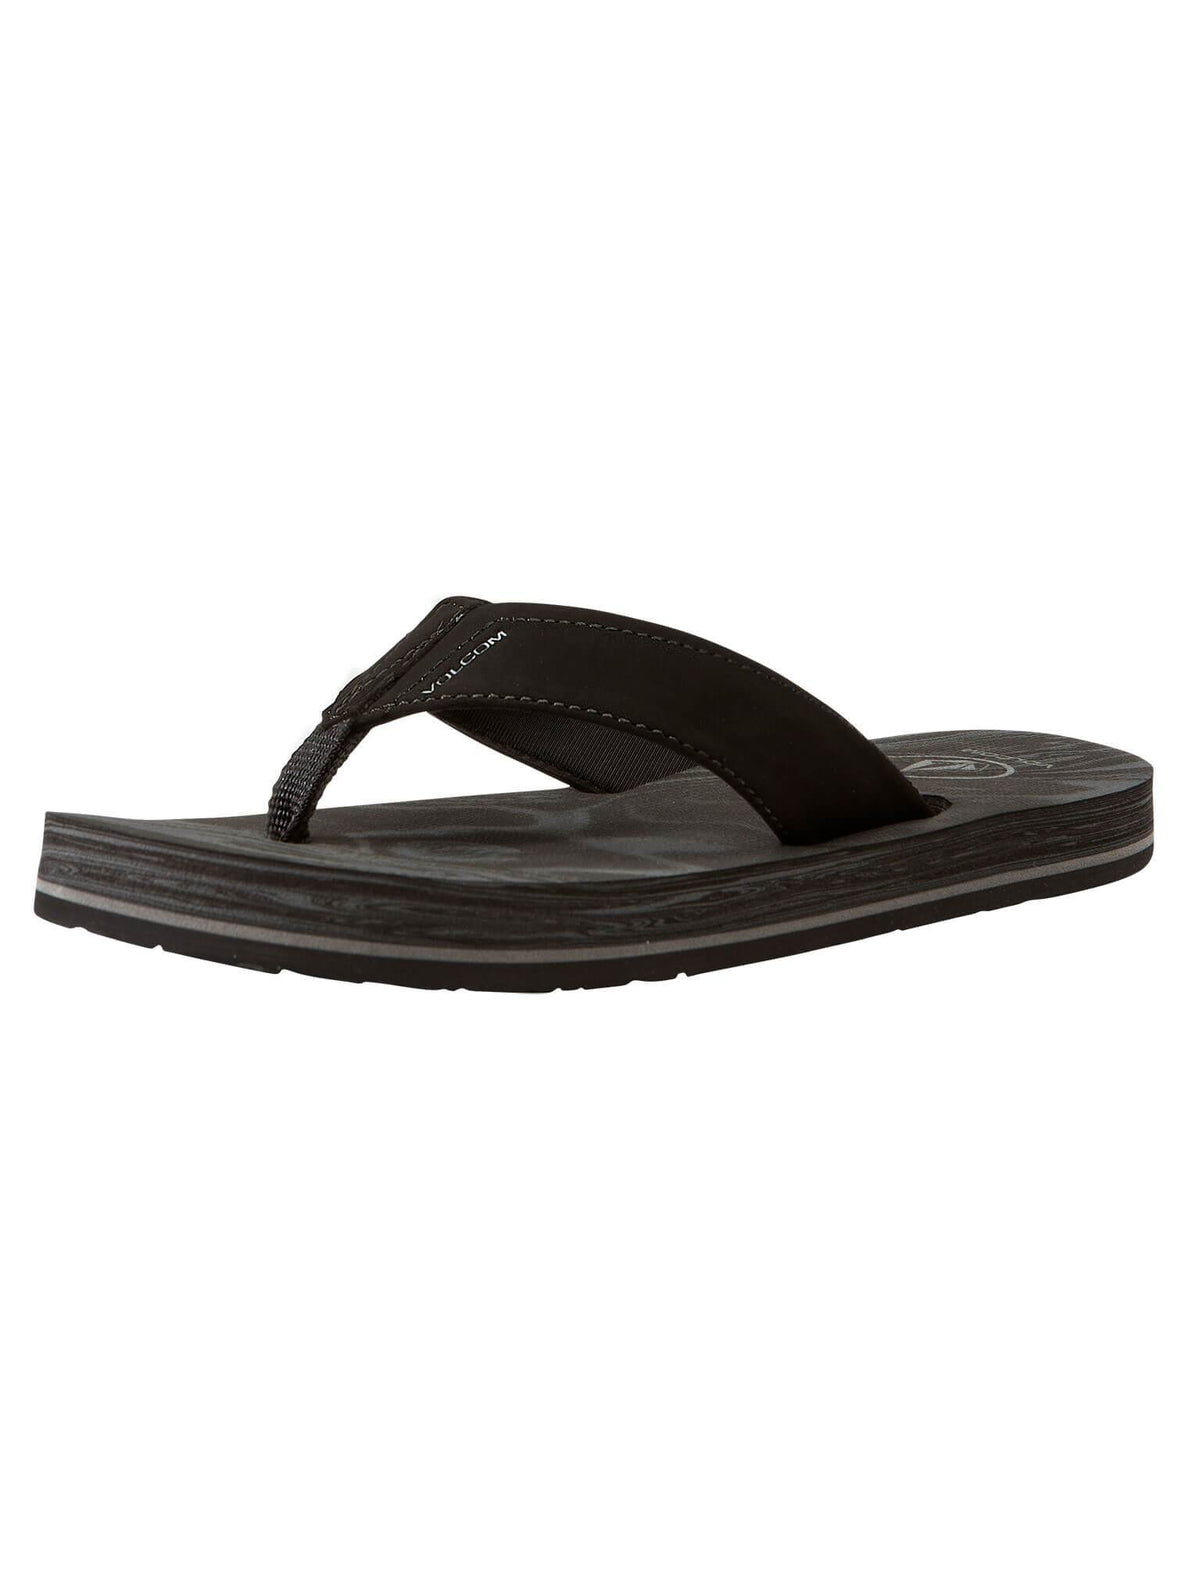 Big Boys Victor Sandals In Black Charcoal, Back View